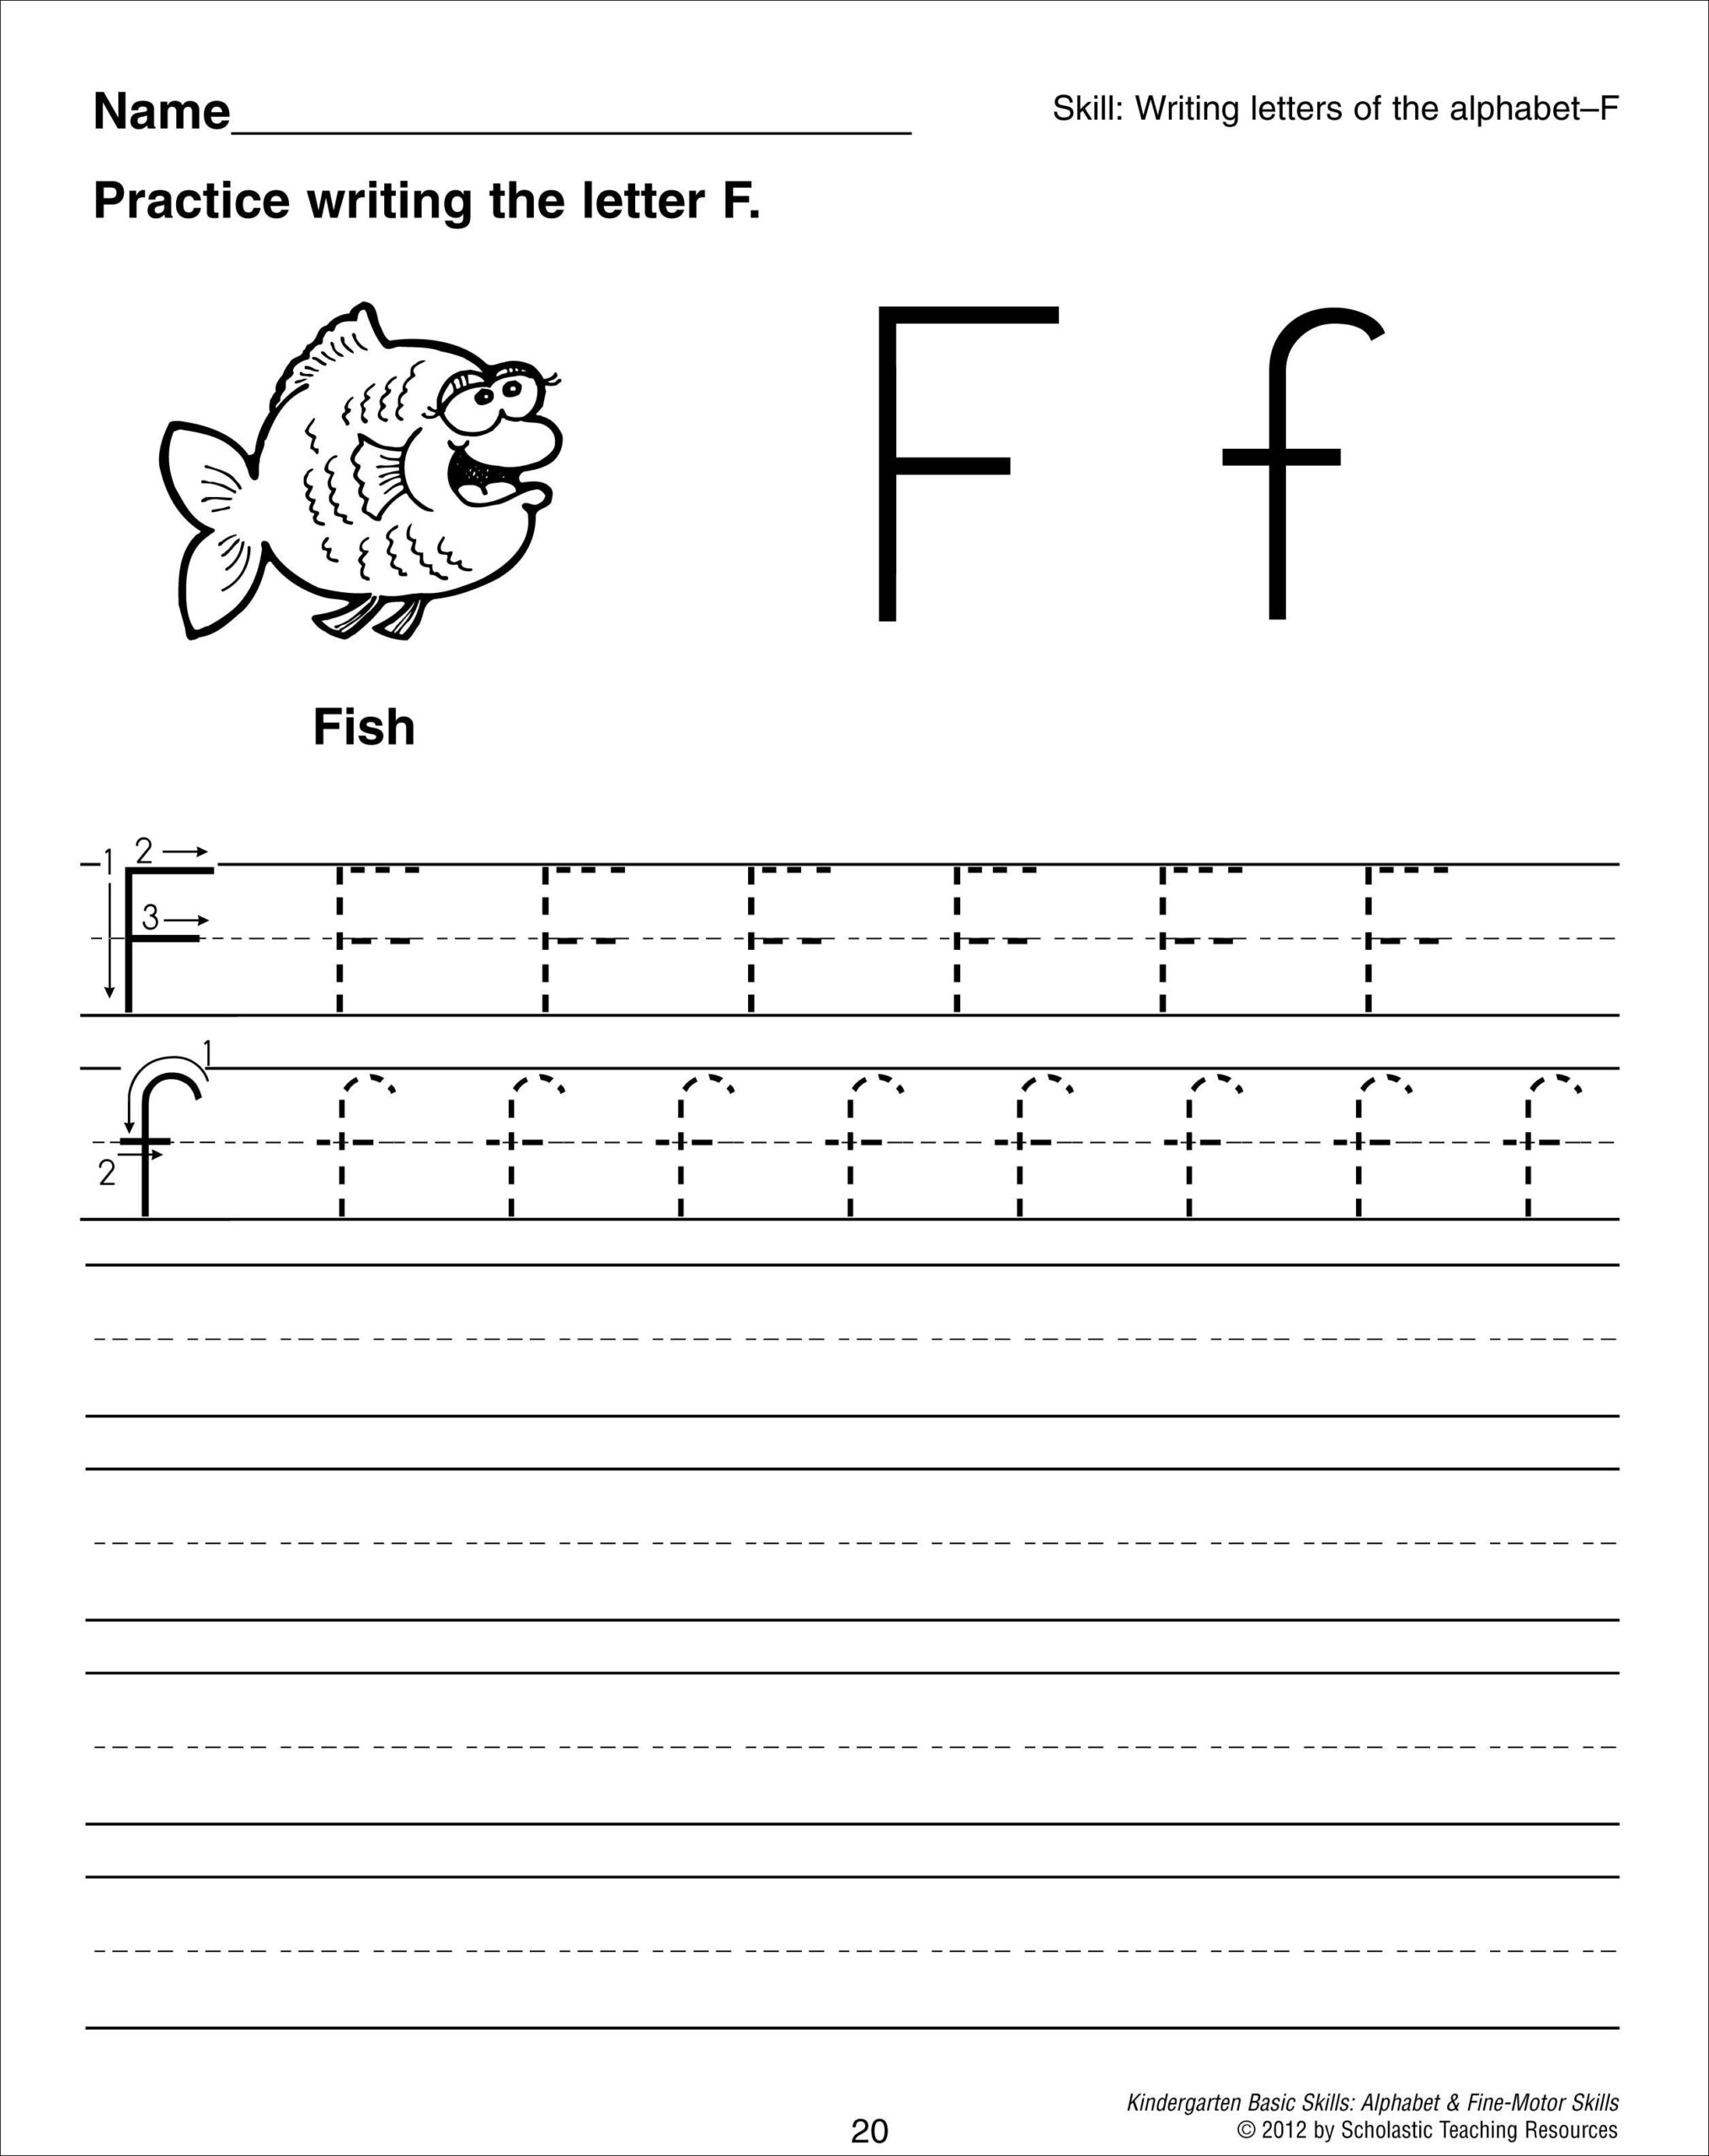 Worksheet ~ Cursive Handwriting Alphabets Free Printable Dot